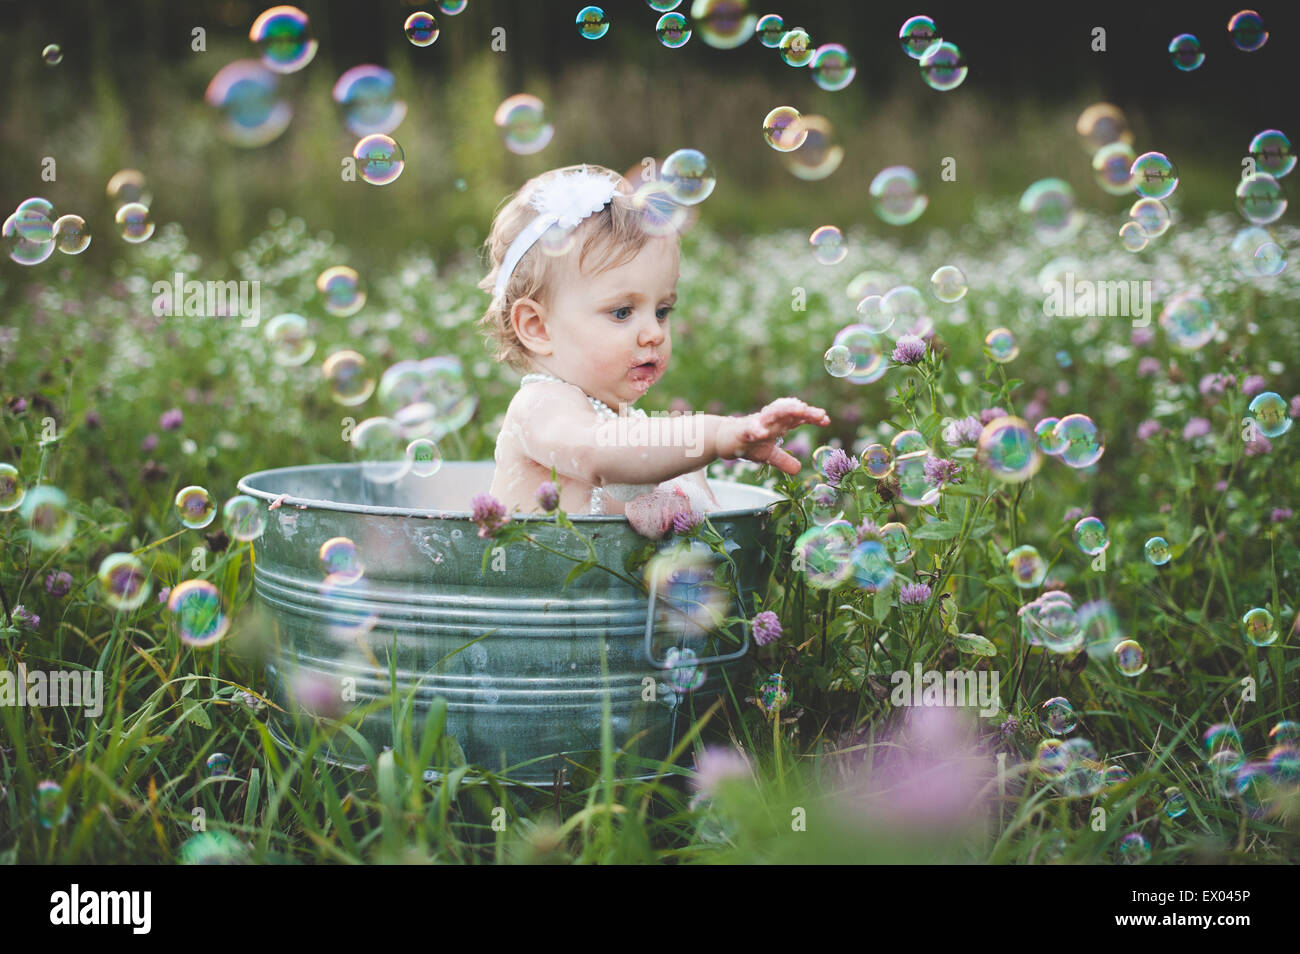 Baby girl in tin bathtub in meadow reaching for floating bubbles - Stock Image